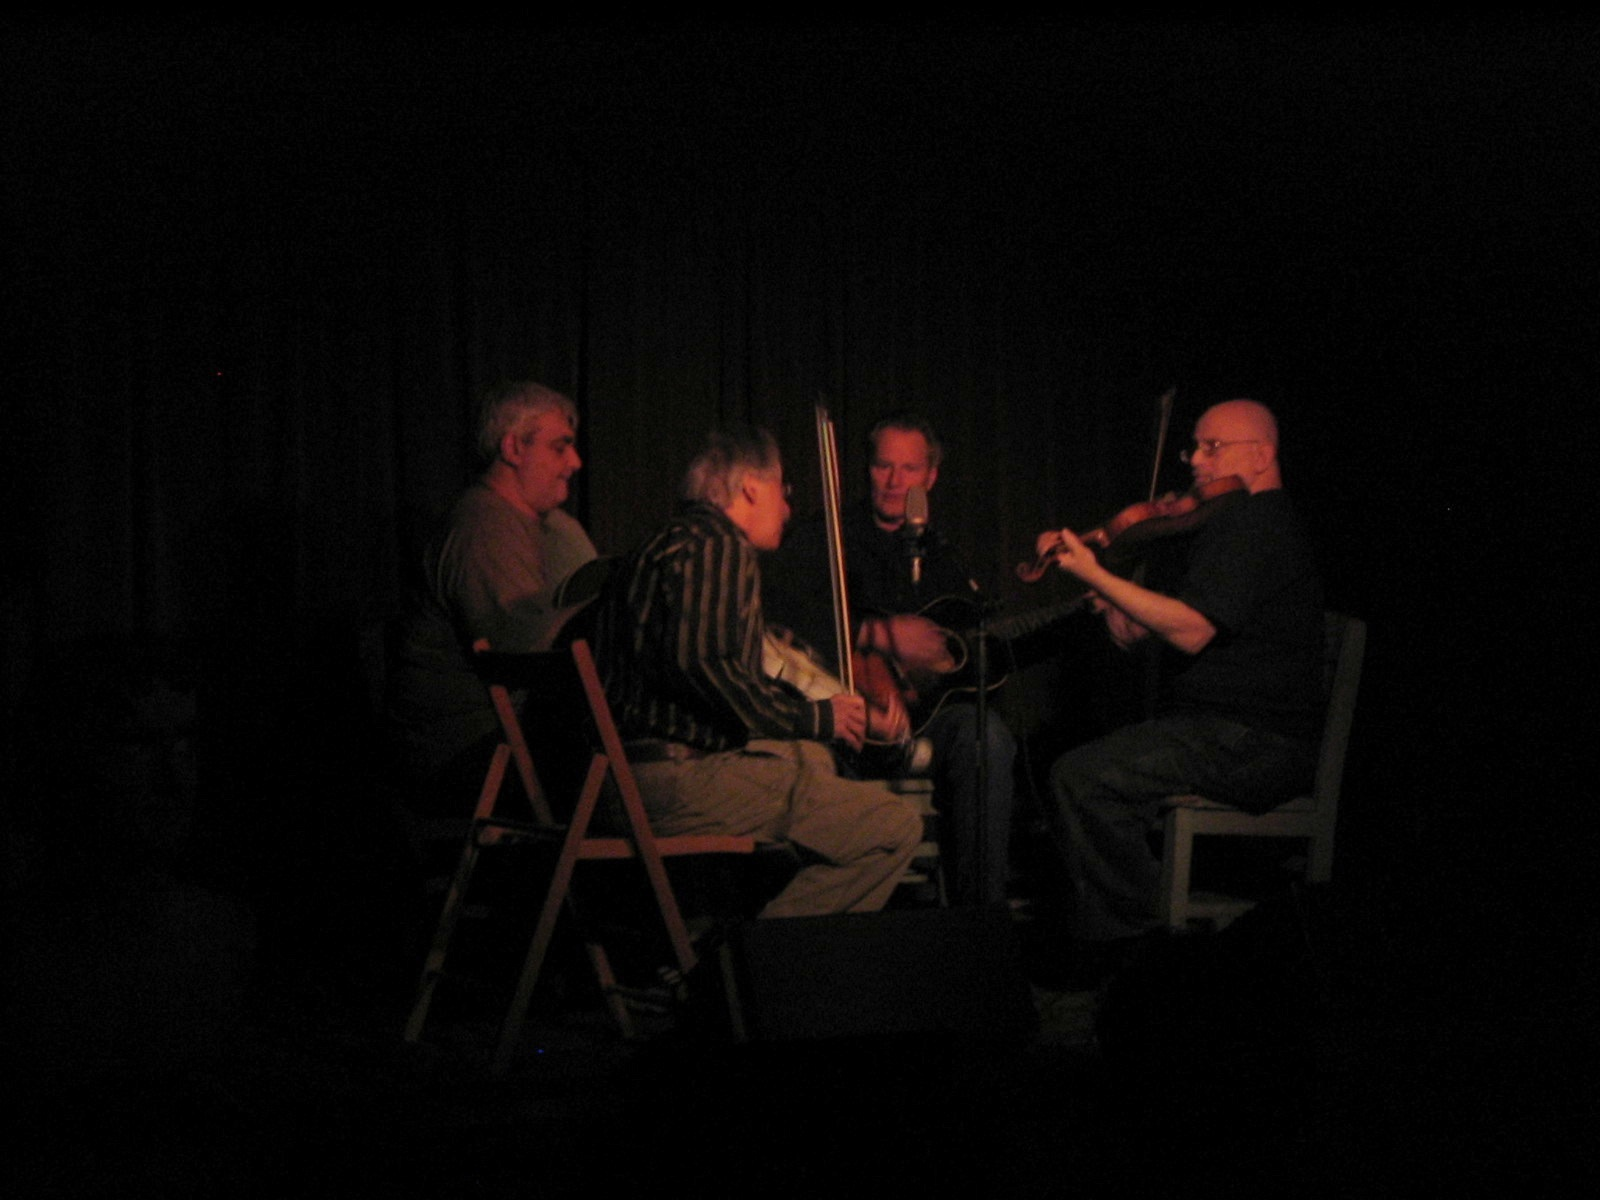 Peter Stampfel, Sam Shepard, Pat Conte, Citizen Kafka at Roots 'n' Ruckus Jalopy Feb 20 2008